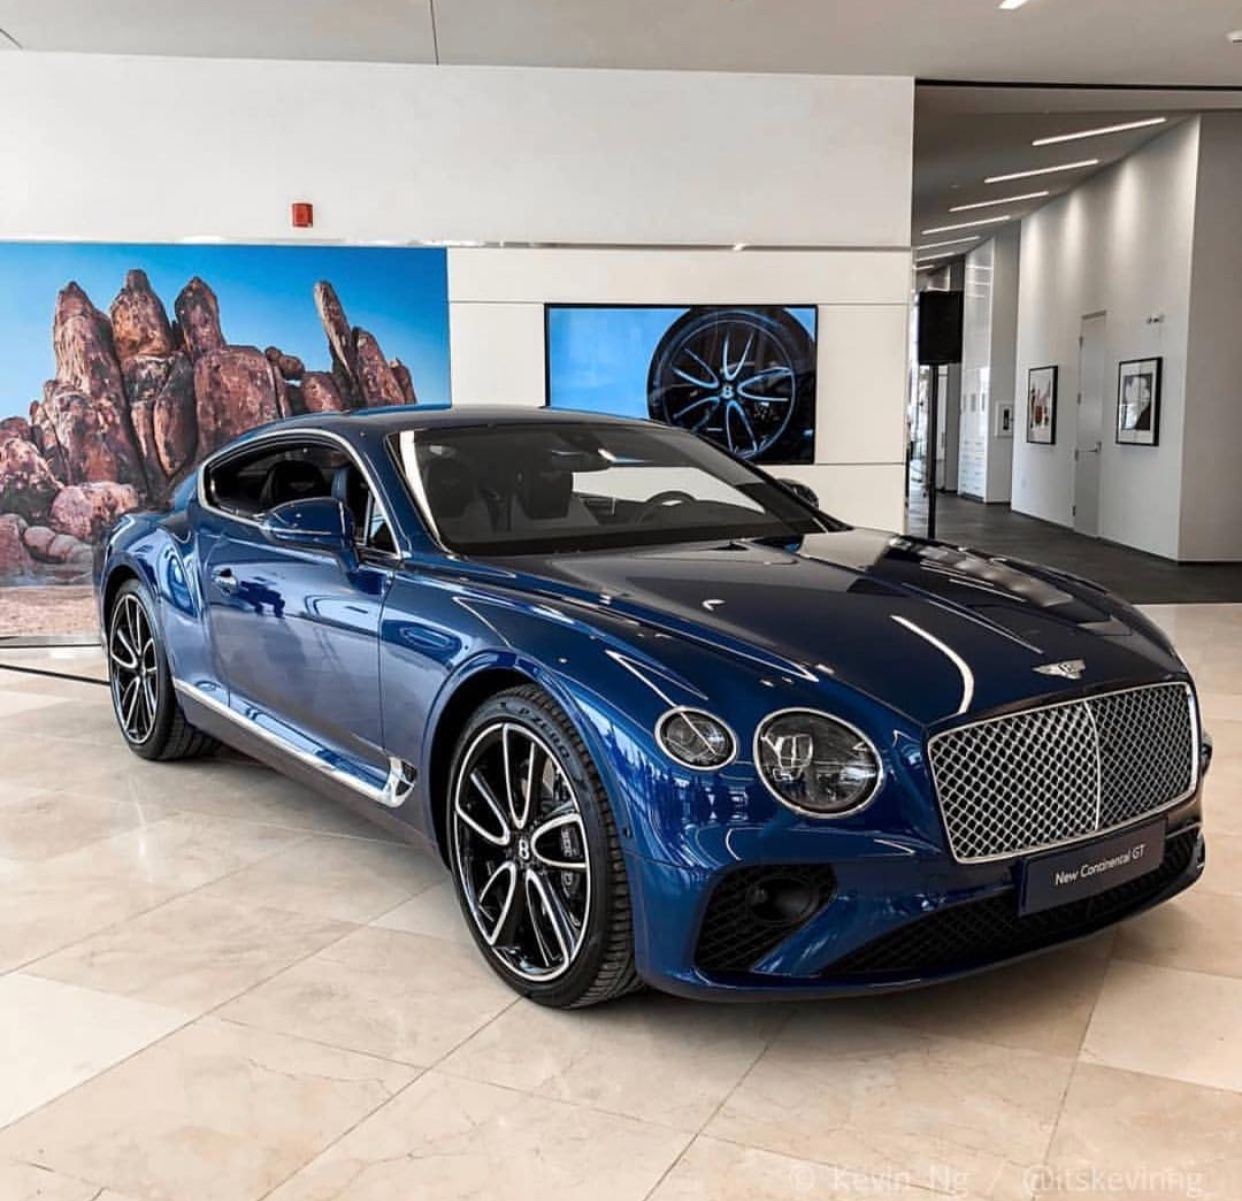 Cars, Bentley Gt, Bentley Car